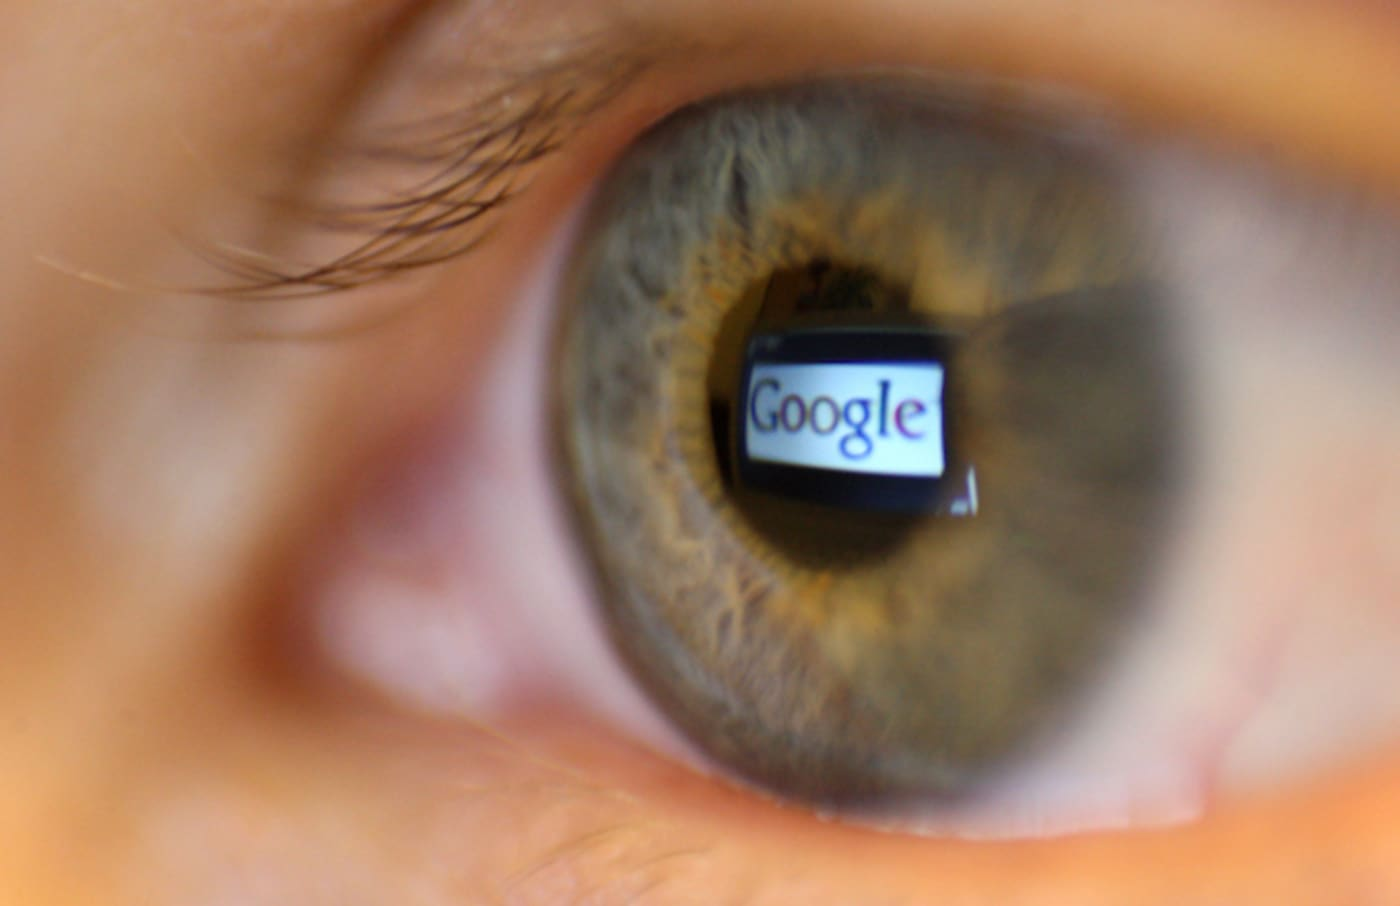 Google seen reflected in a person's eye.